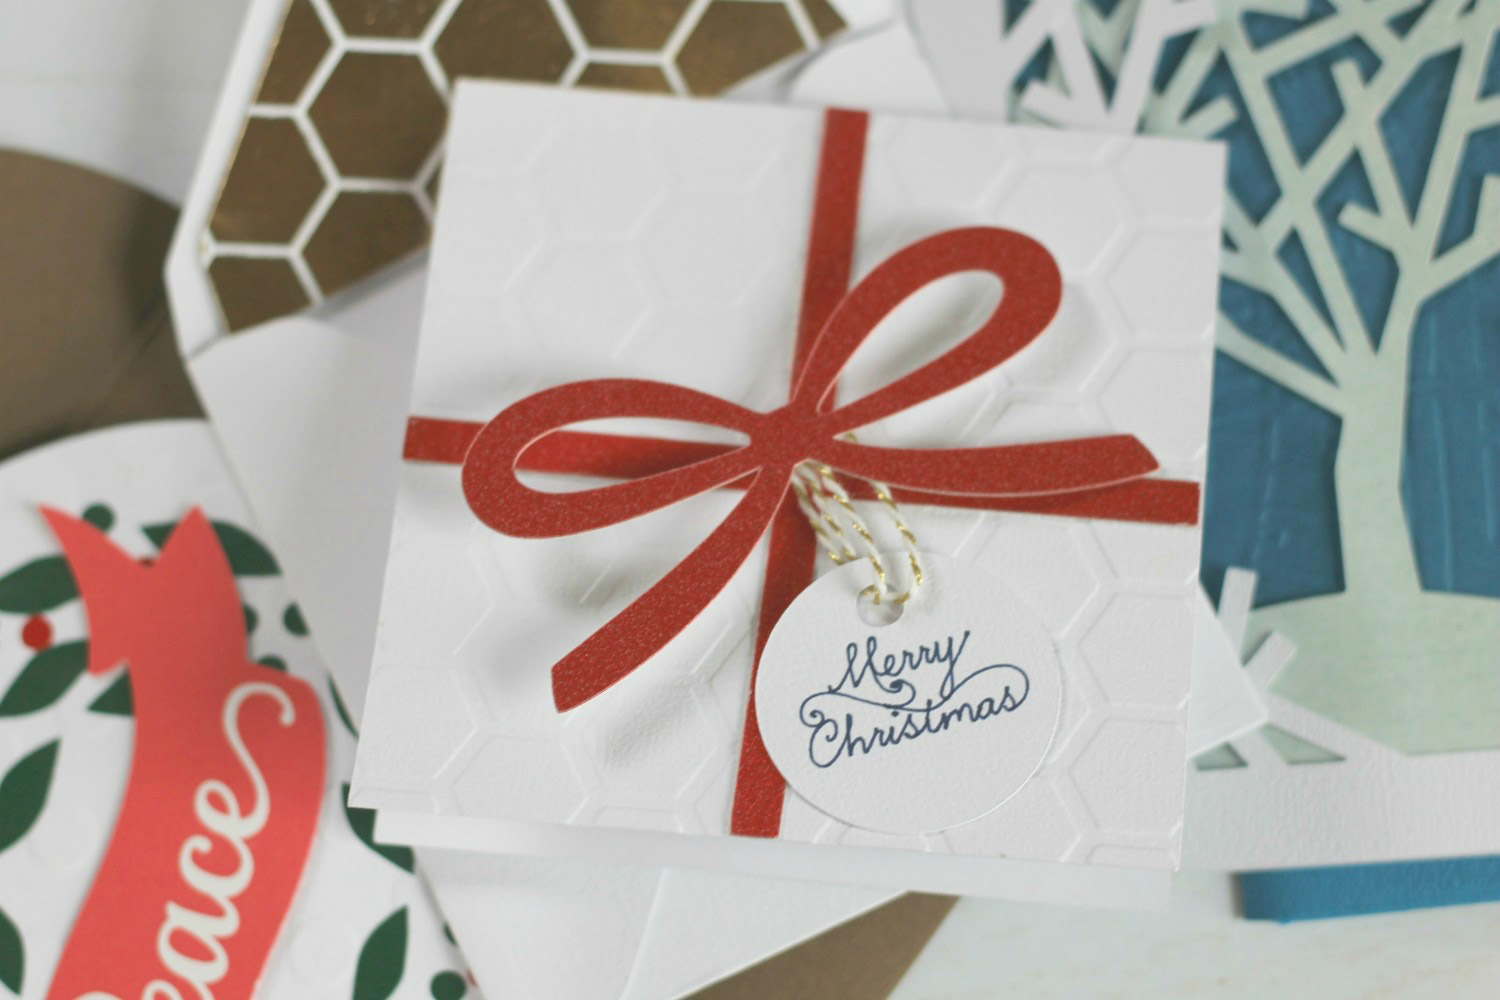 Finished holiday cards